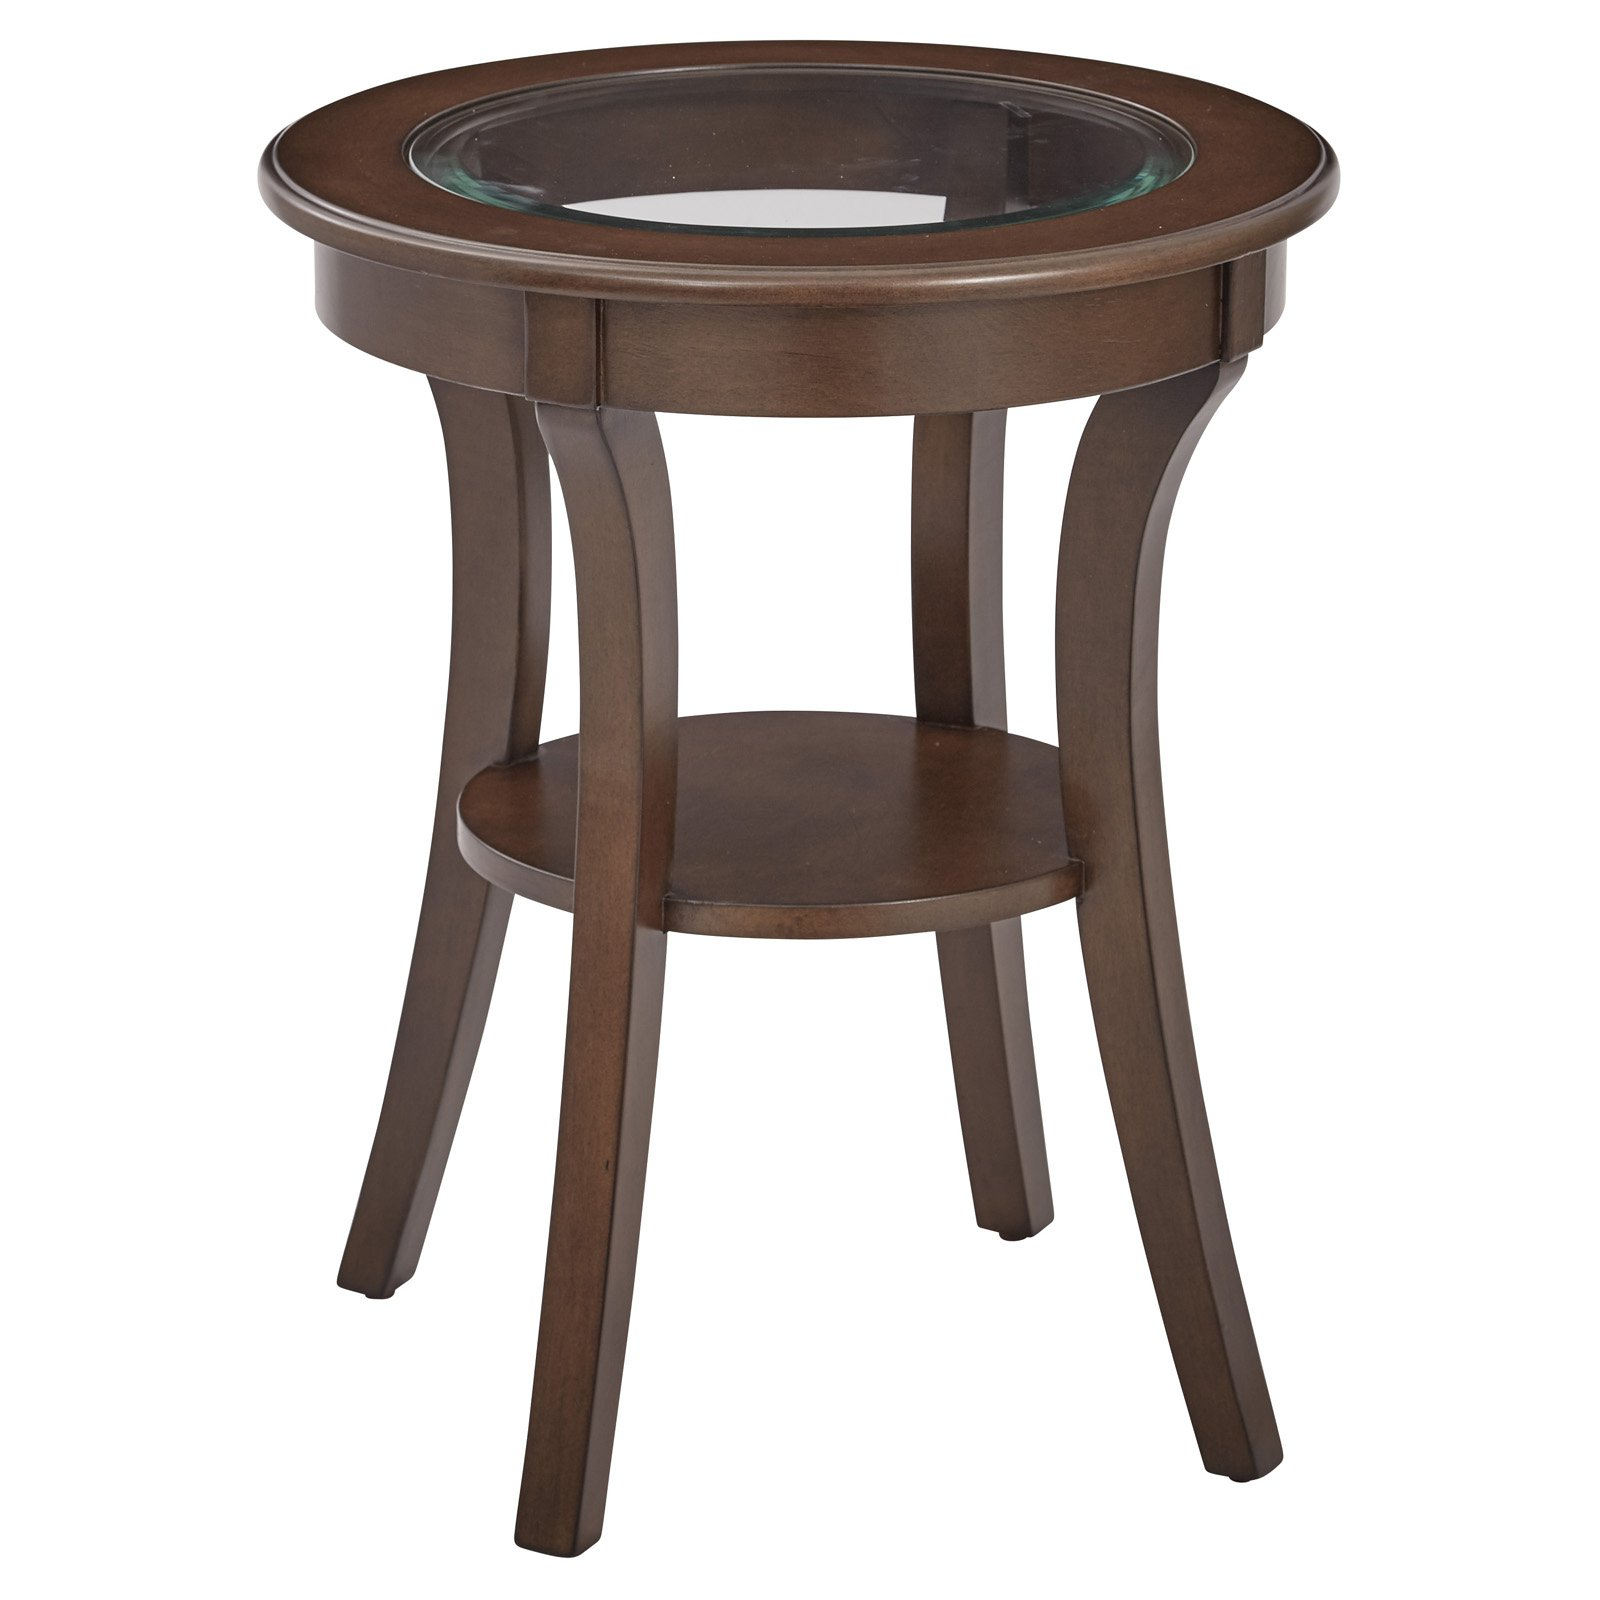 OSP Designs, Harper Round Accent Table with Glass top, Ships Fully Assembled by Office Star Products